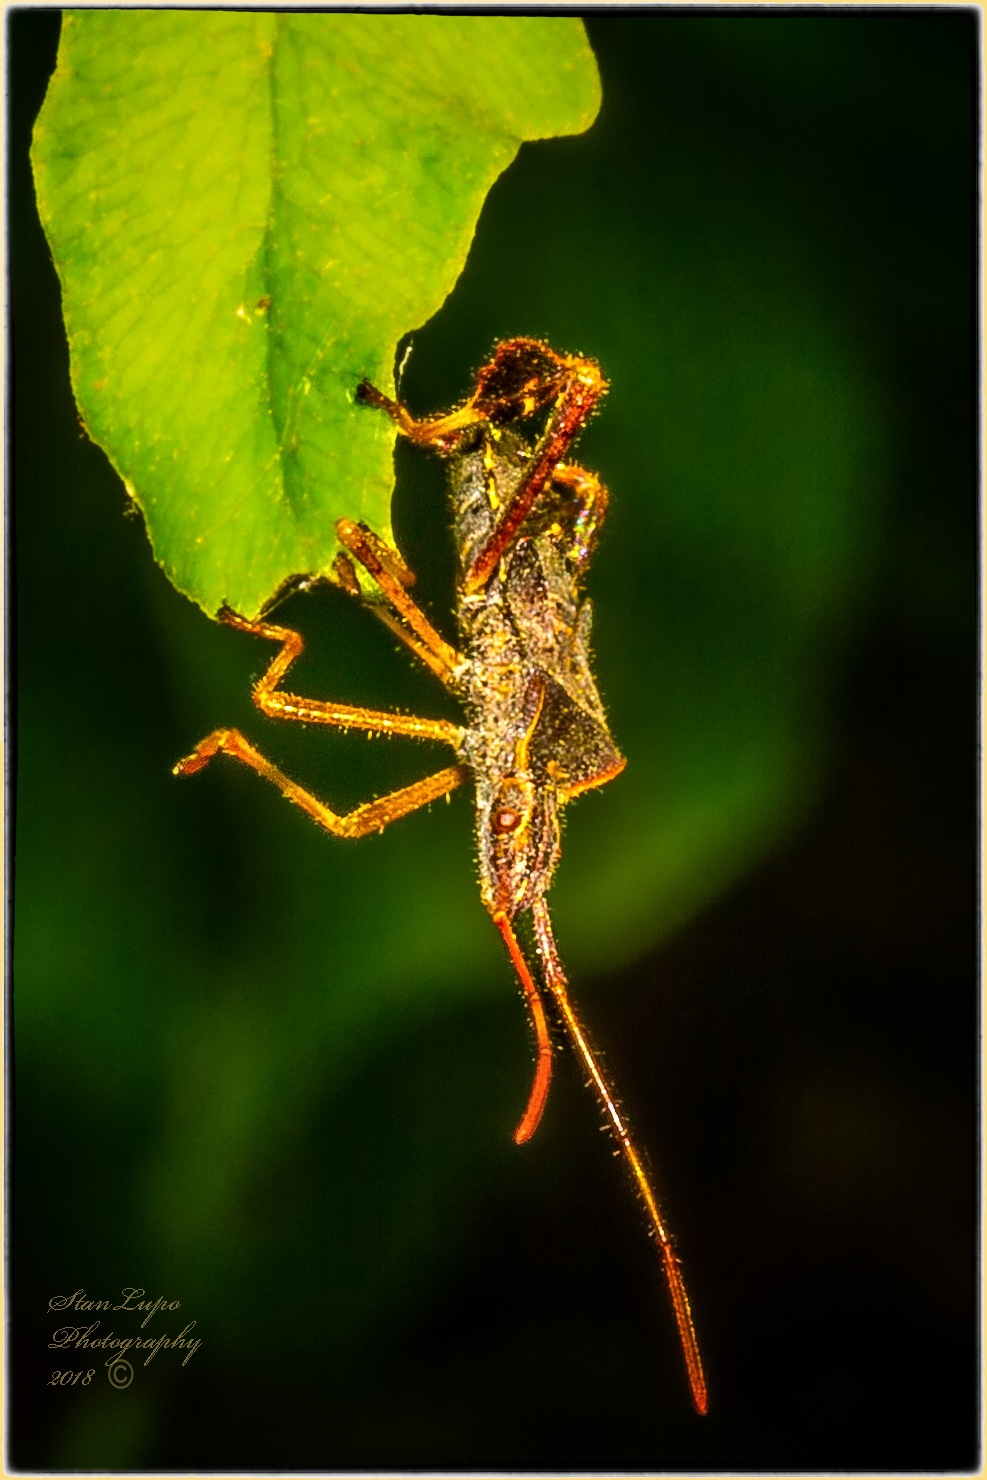 Leaf-footed Bug Hanging On To Leaf With Leaf-feet by stanlupo